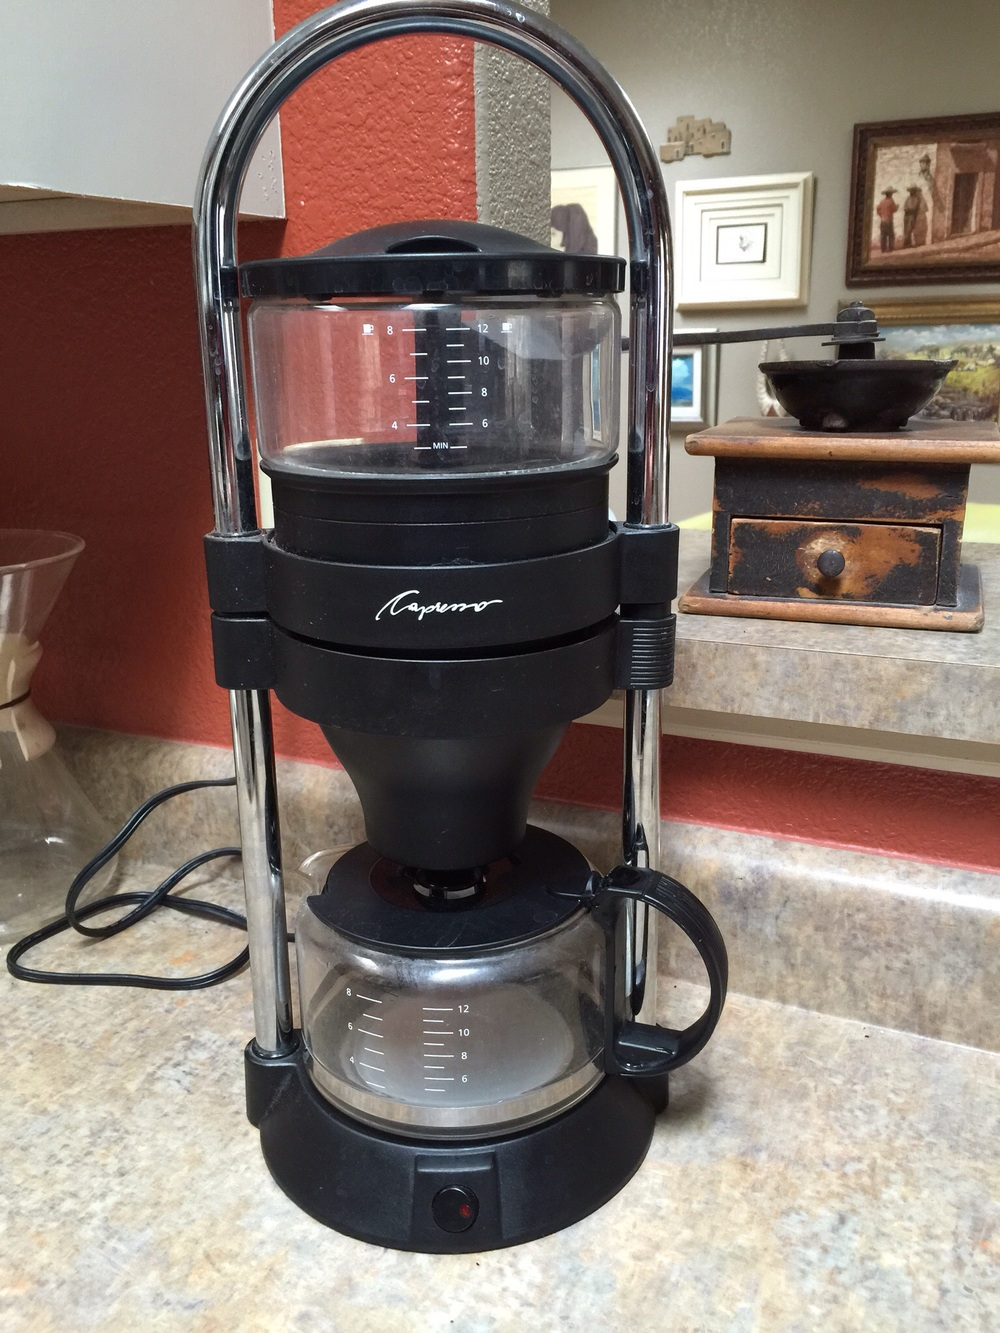 Capresso Aromatic Coffee Maker